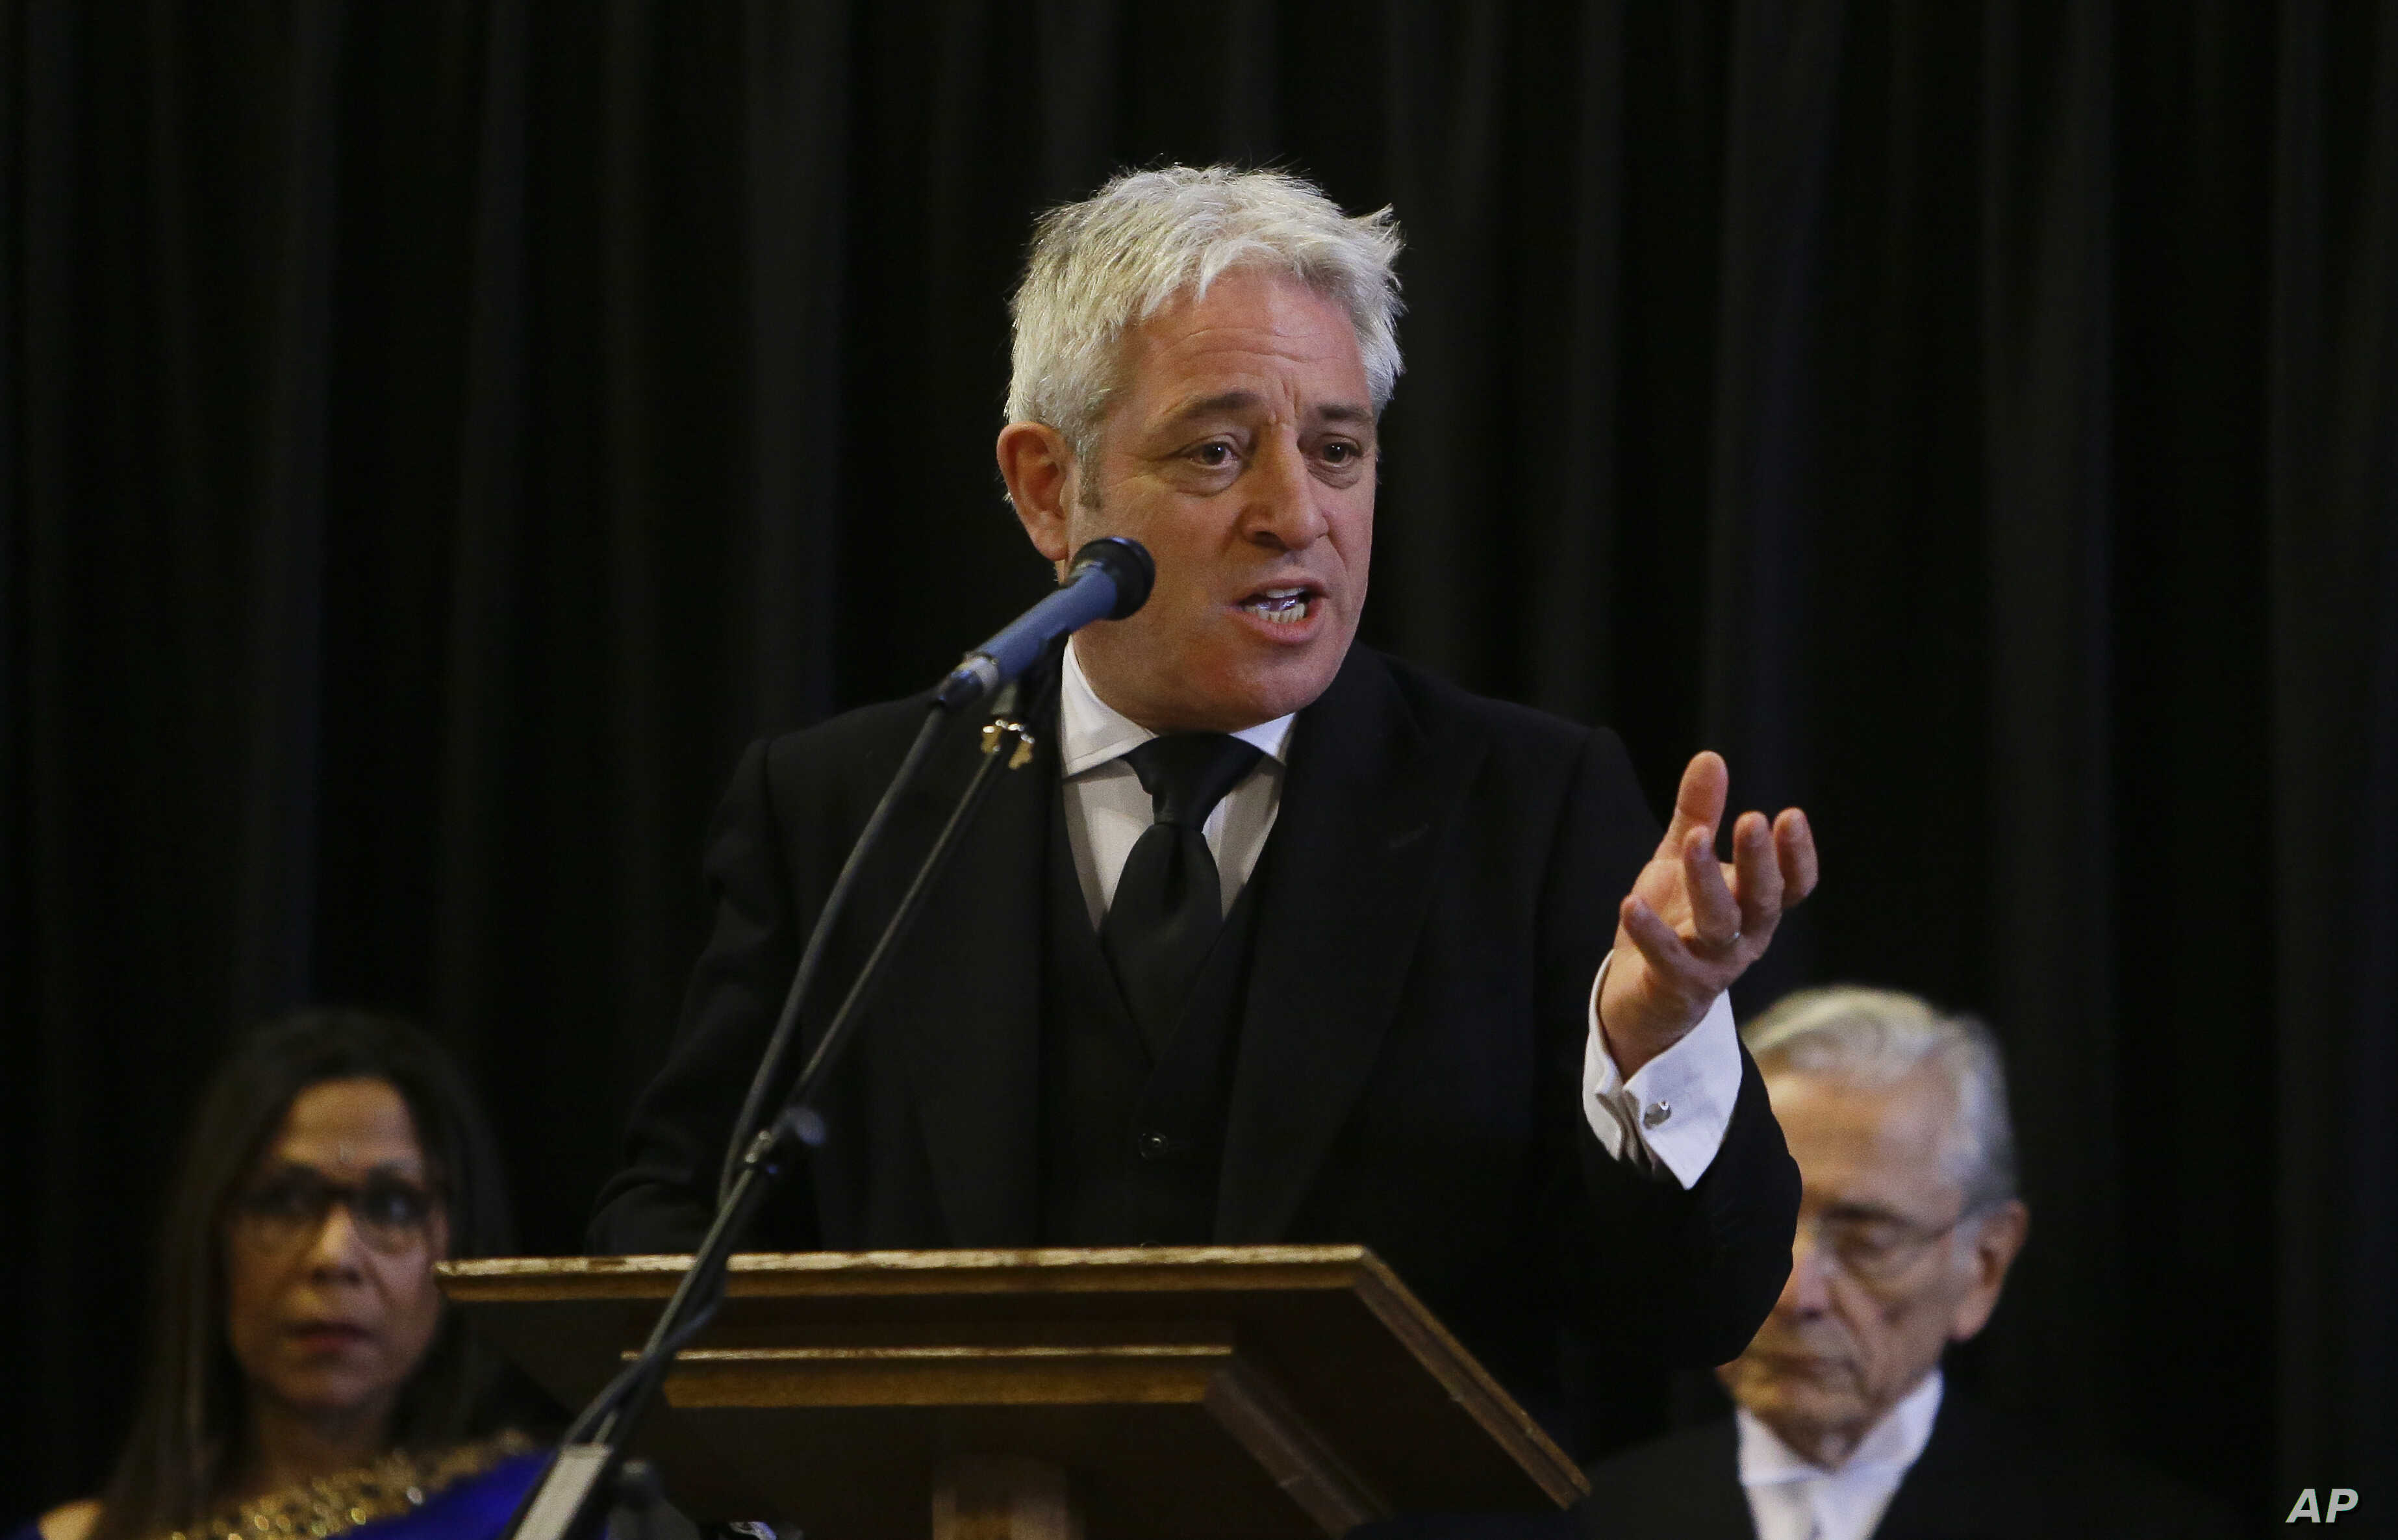 FILE - John Bercow, Speaker of the House of Commons, speaks at Westminster Hall inside the Palace of Westminster in London, March 22, 2018.